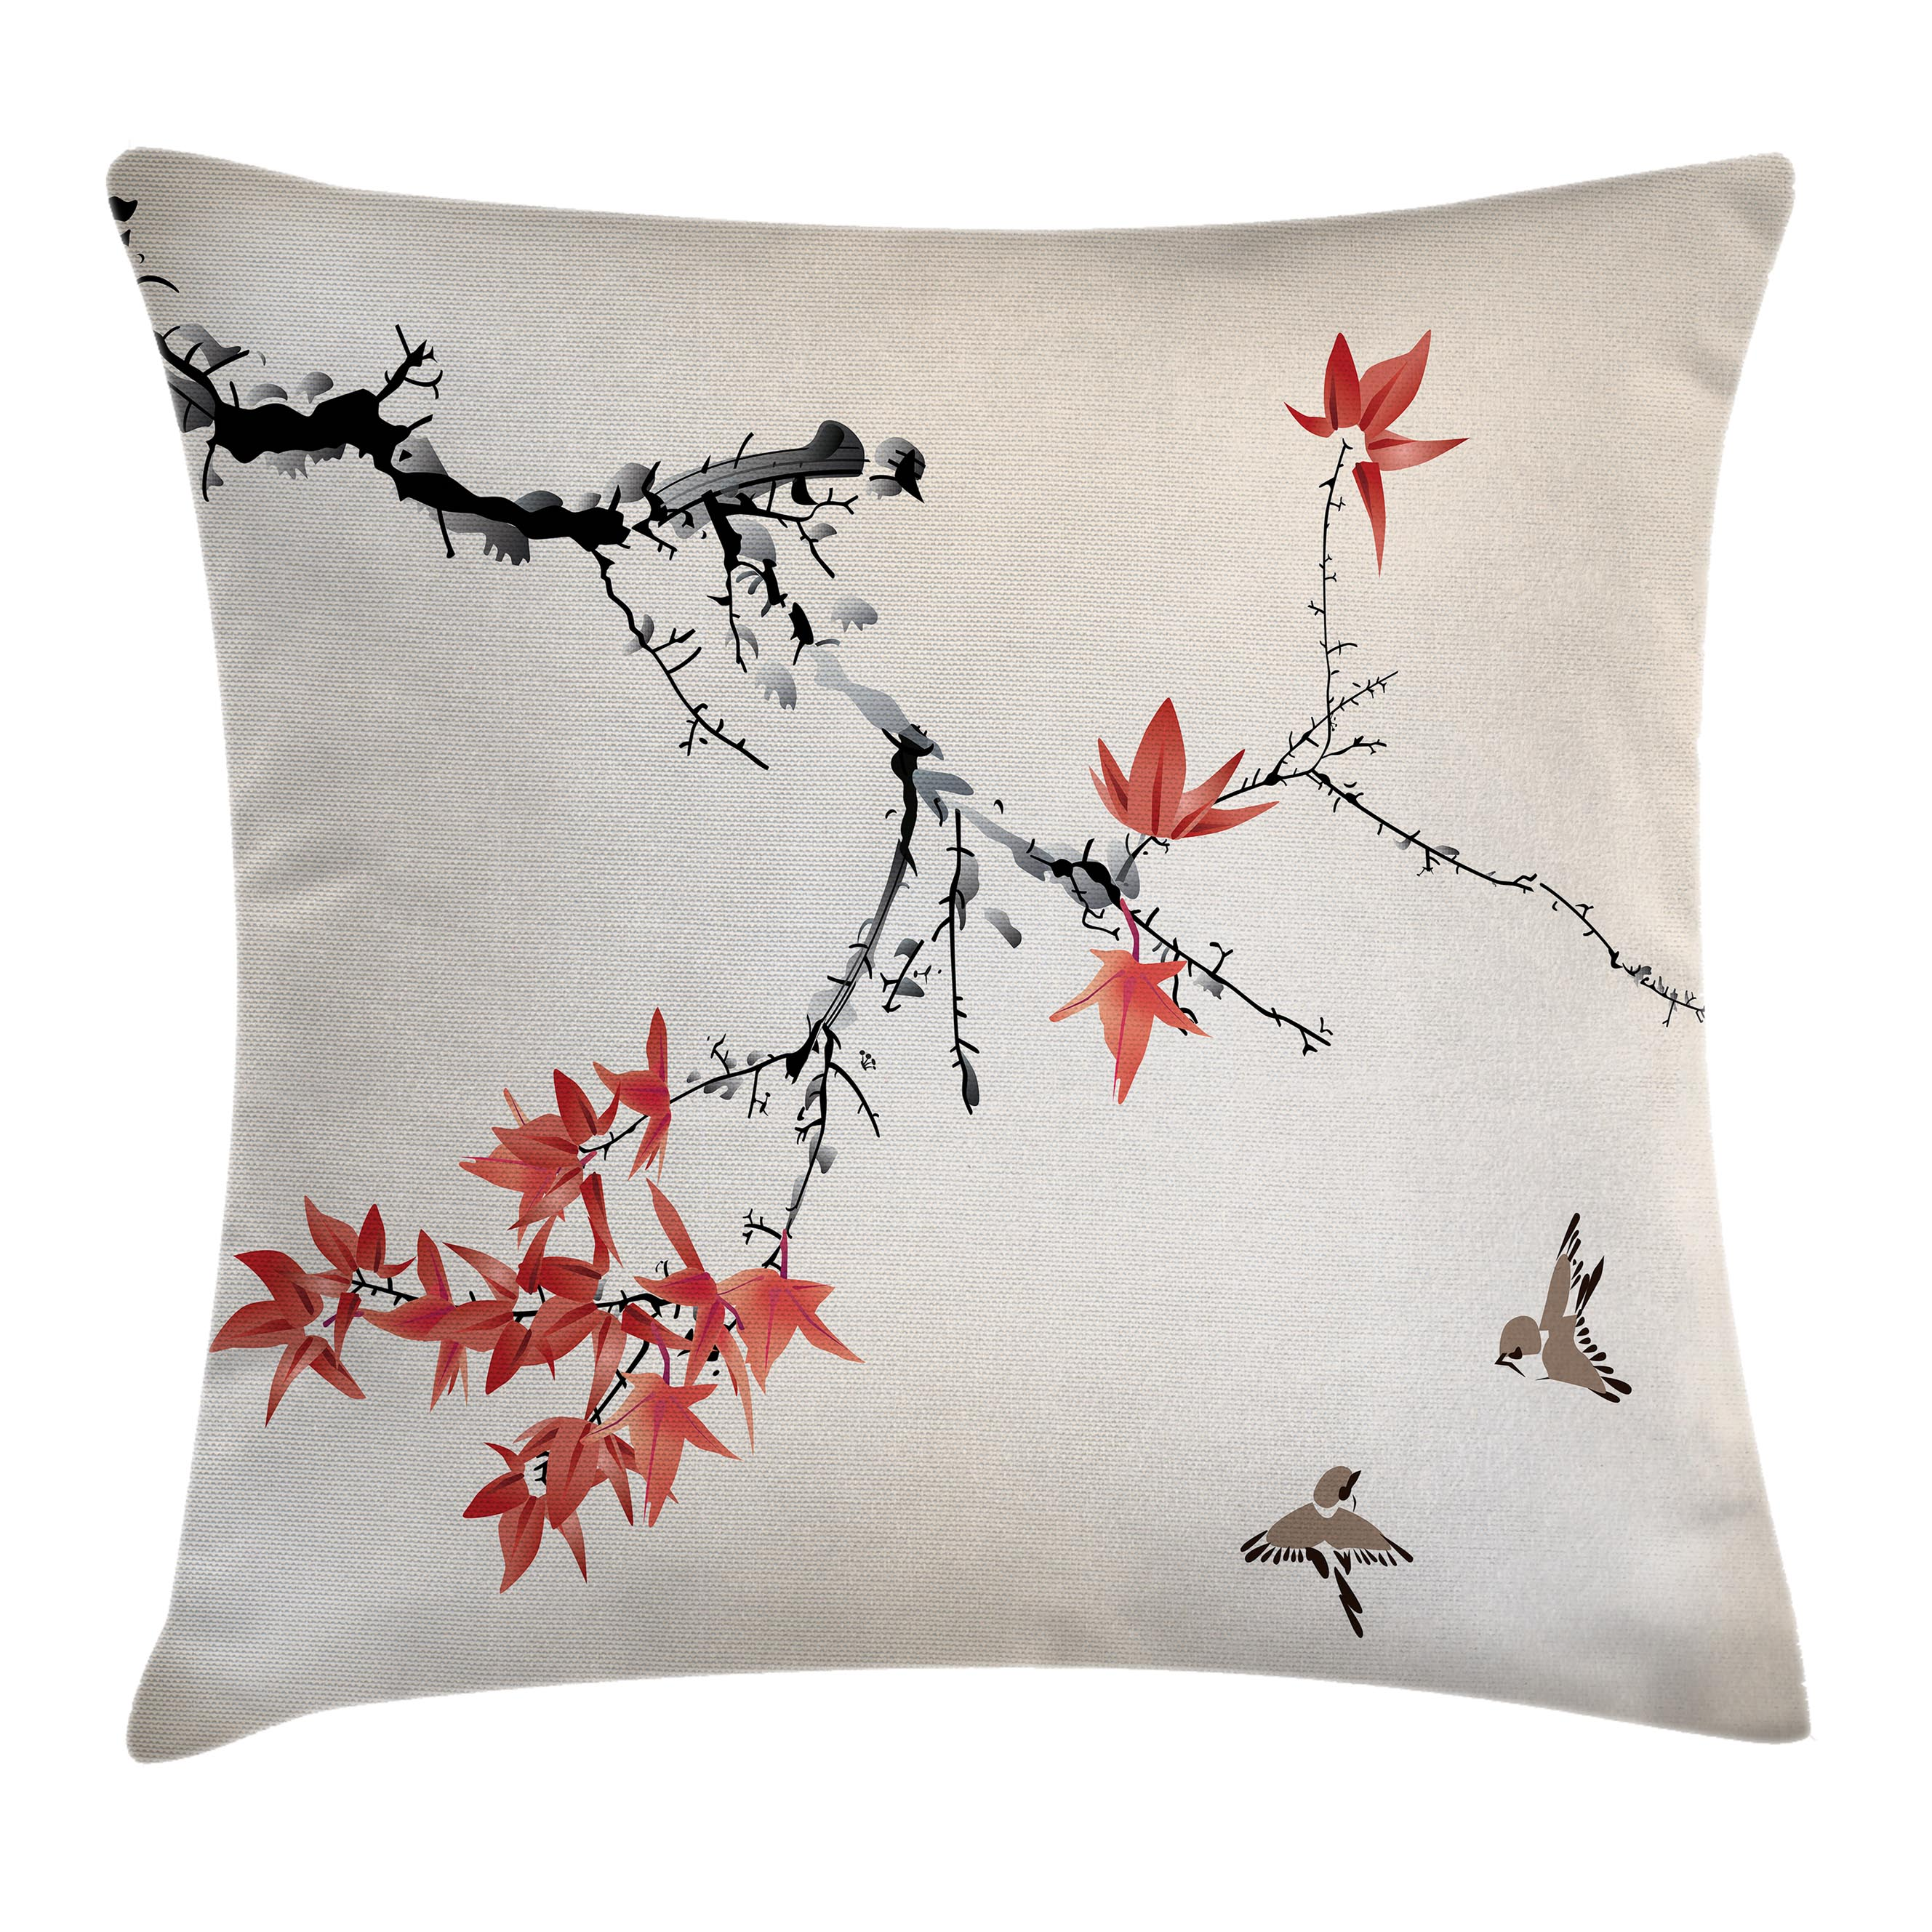 Japanese Throw Pillow Cushion Cover, Cherry Blossom Sakura Tree Branches Romantic Spring Themed Watercolor Picture, Decorative Square Accent Pillow Case, 24 X 24 Inches, Coral Black, by Ambesonne